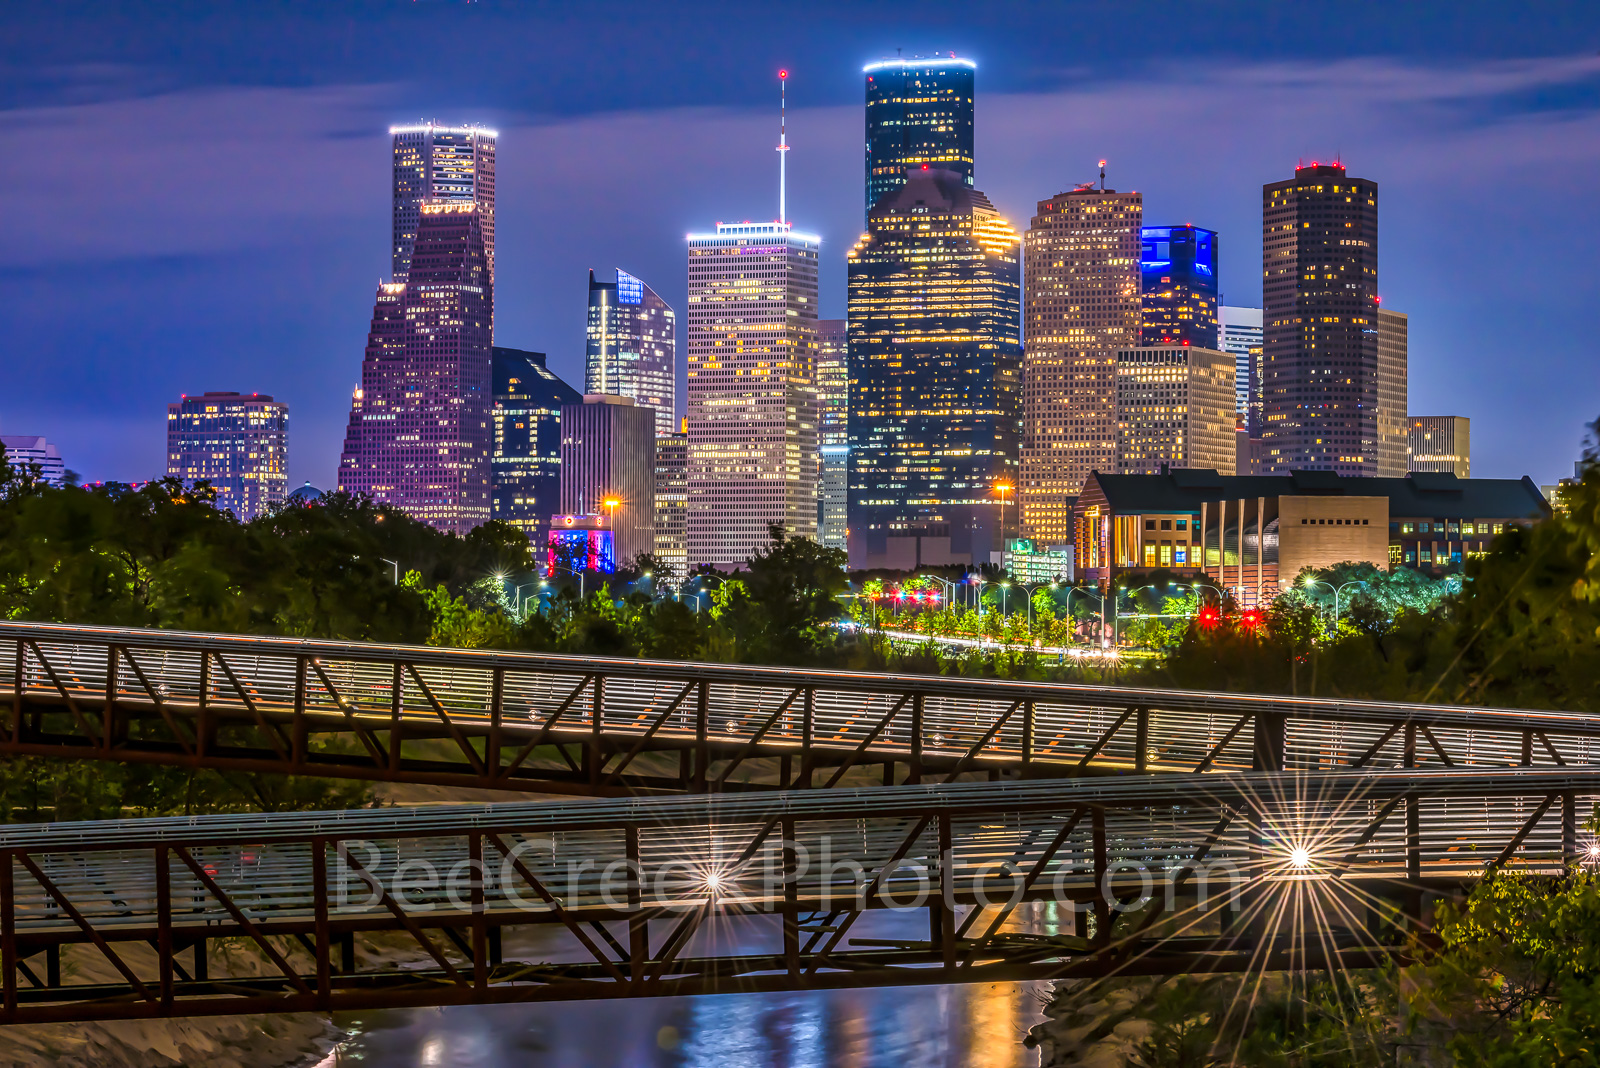 houston skyline, Houston skyline pictures, image of houston skyline, rosemont, pedestrian bridge, buffalo bayou, twilight, downtown,night, city, parks, cultural events, theater district, sports, music, photo